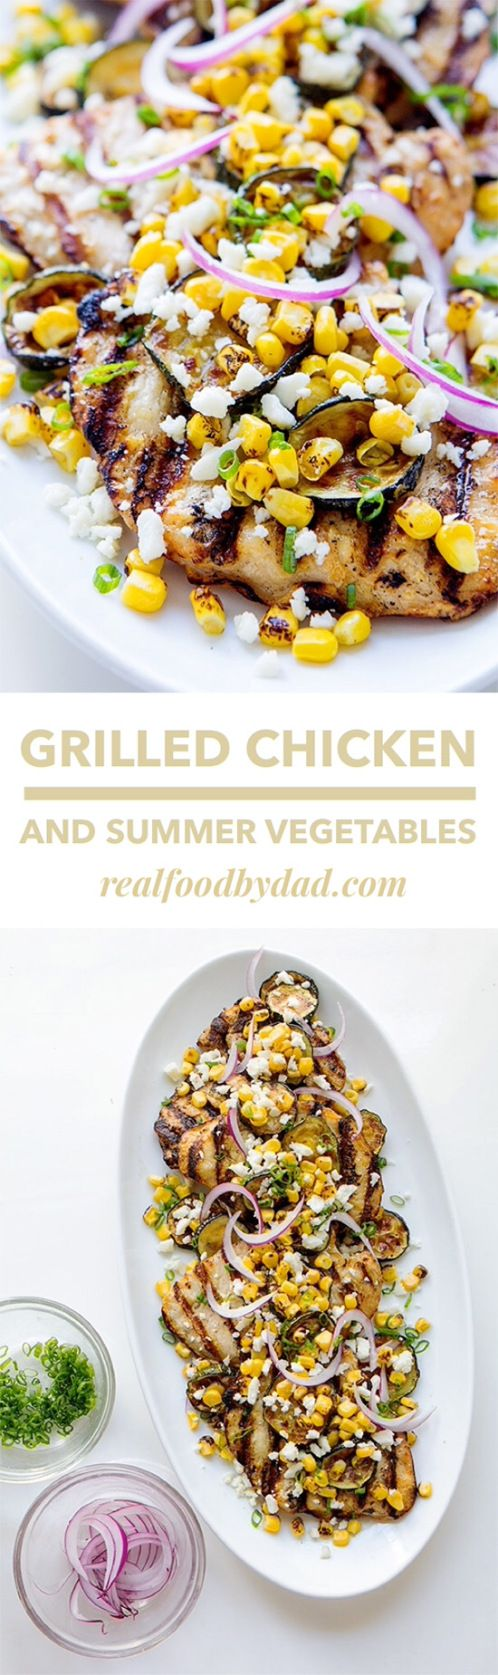 Grilled Chicken and Summer Vegetables from Real Food by Dad